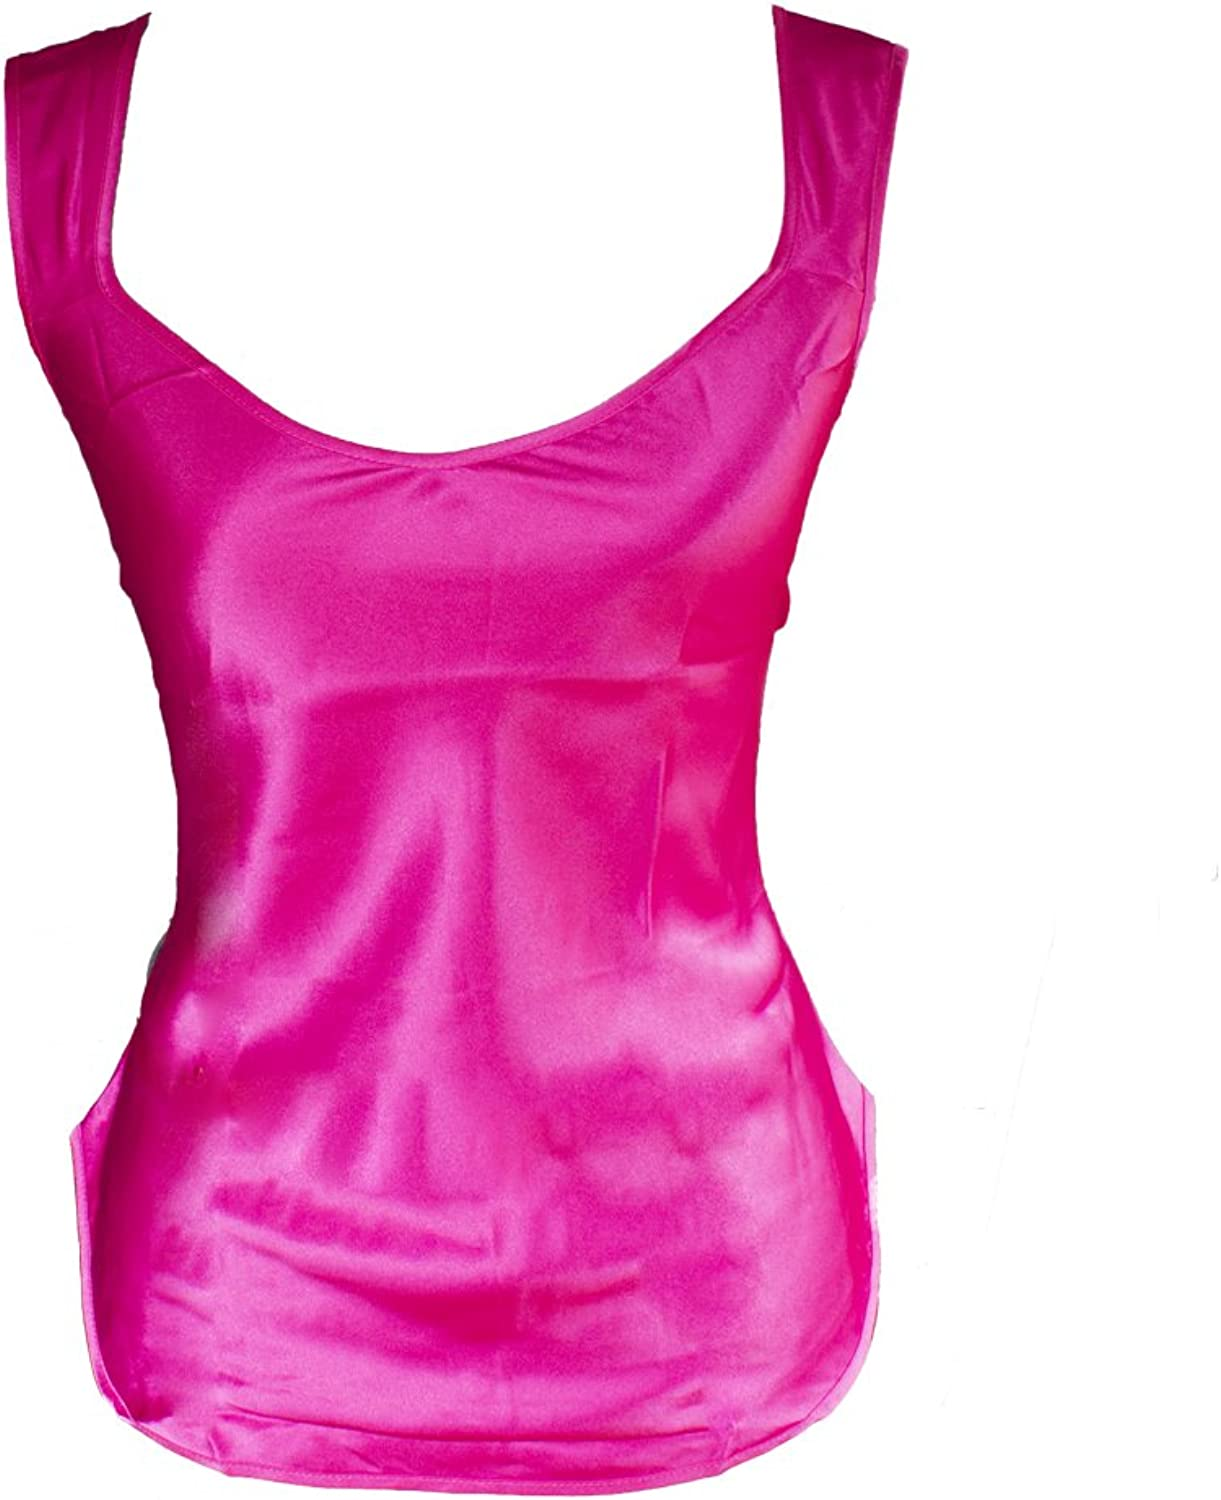 Women's Pink Camisole Silky Charmeuse Fabric L1049